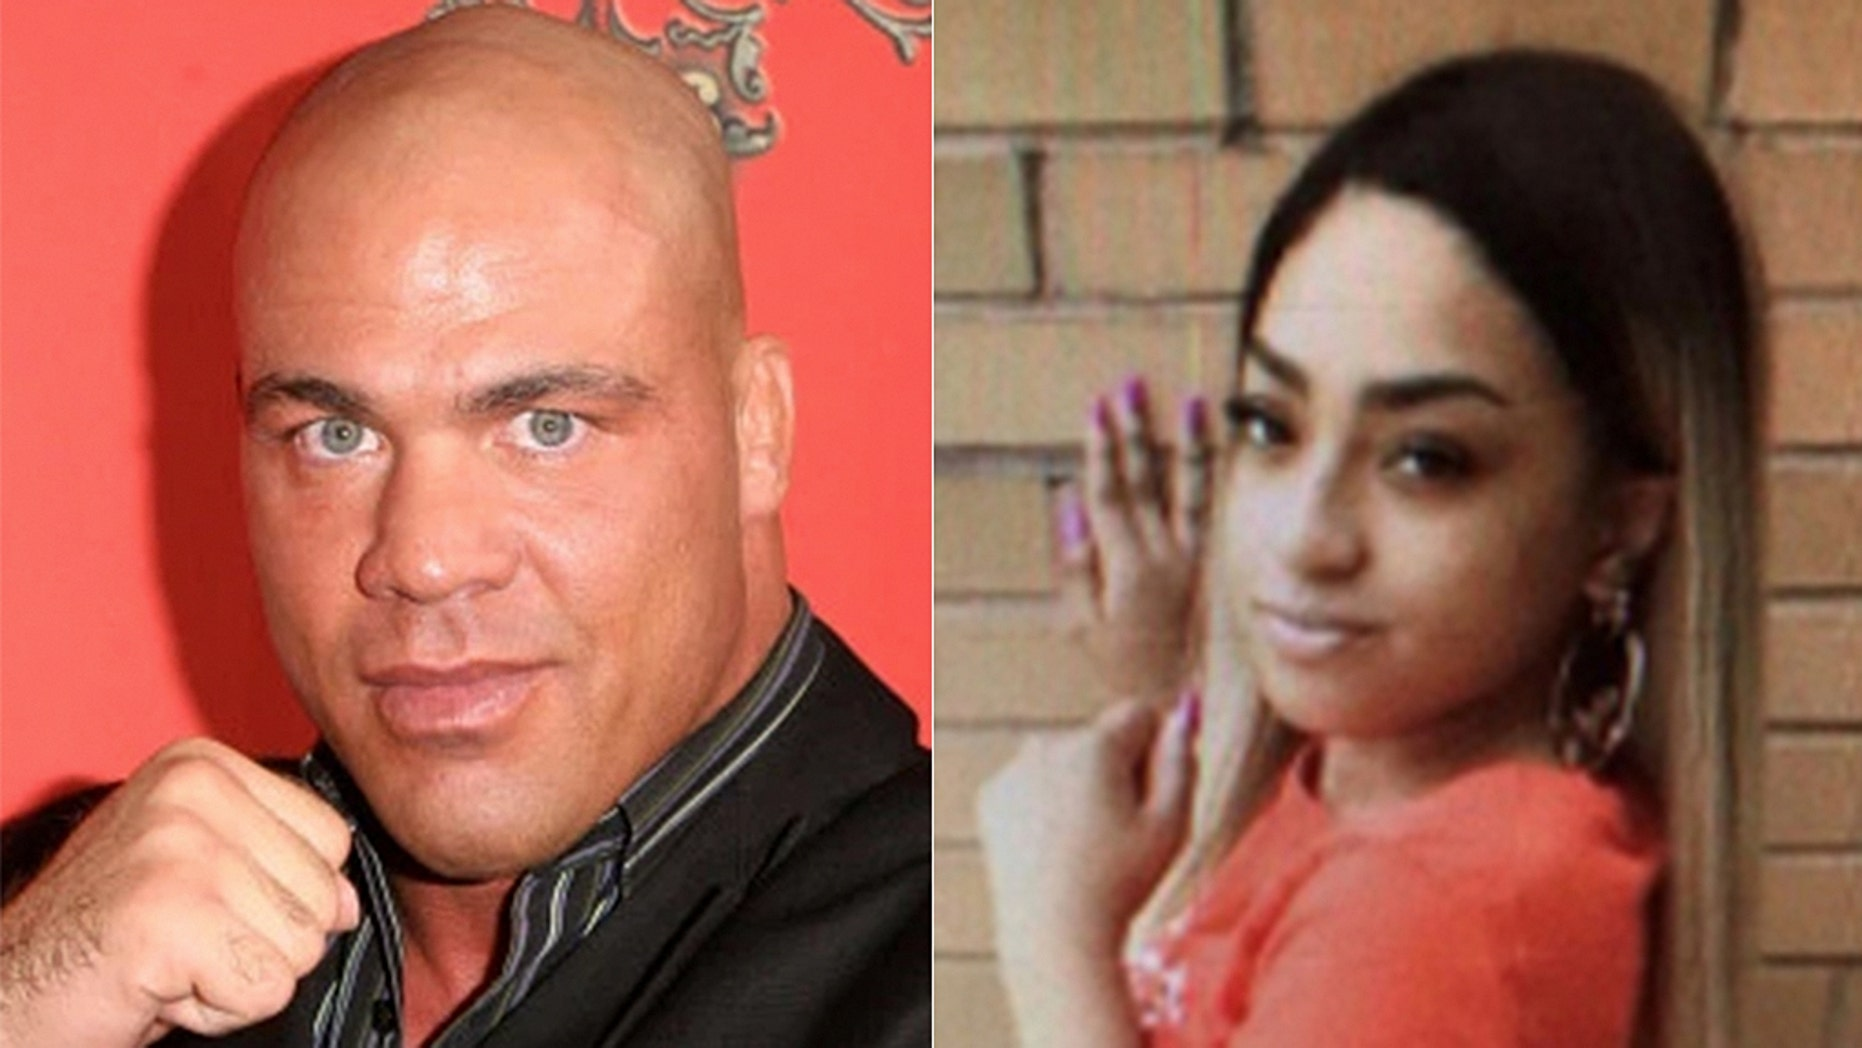 Kurt Angle's niece was found safe early Thursday after she was allegedly kidnapped by her ex-boyfriend.